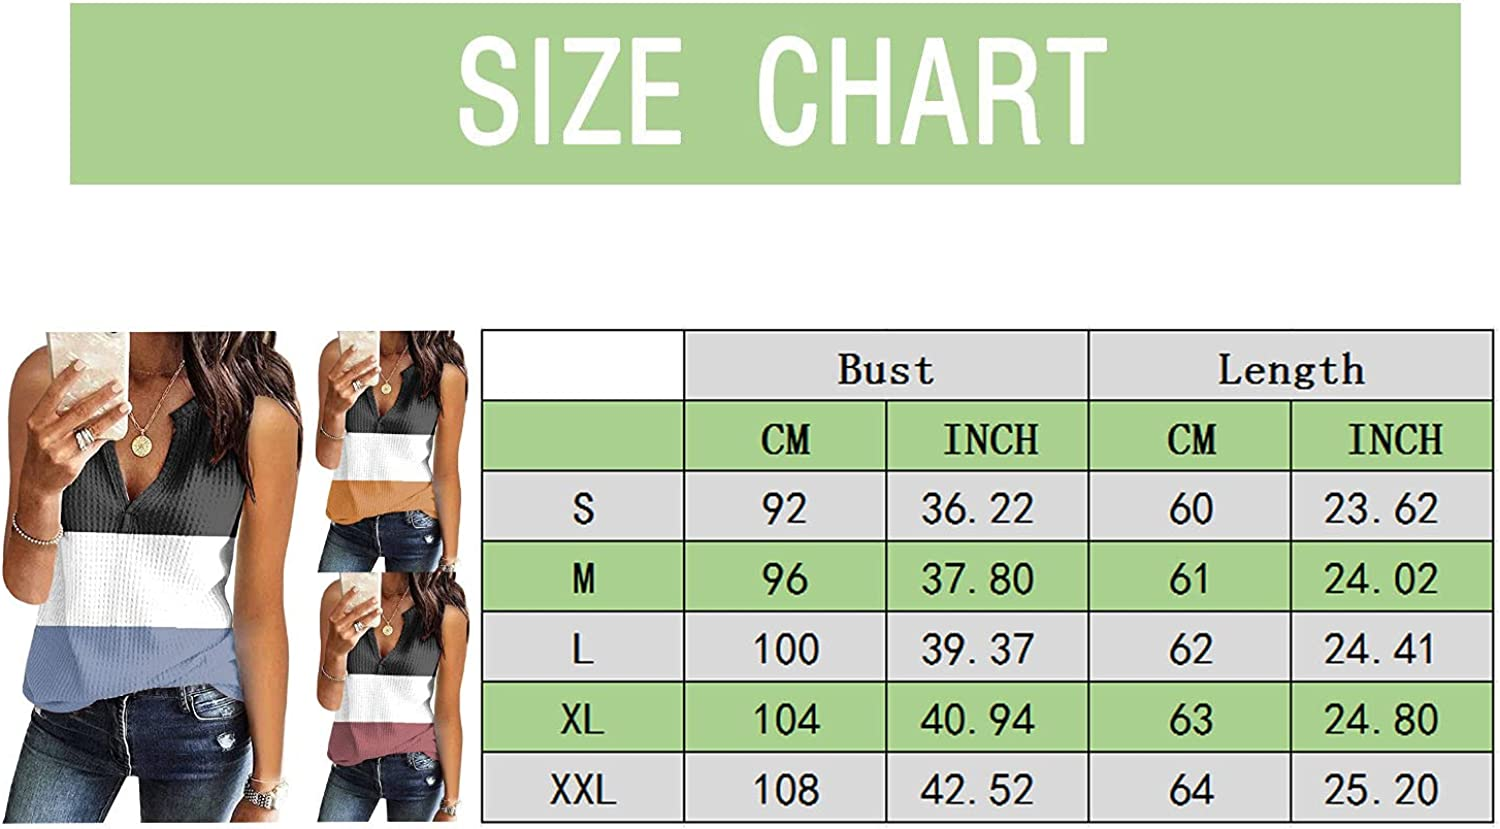 BEUU Women's Summer Henley Tank Tops Sleeveless Button Up V Neck Tees Casual Tunic Shirts Waffle Knit Flowy Camisole